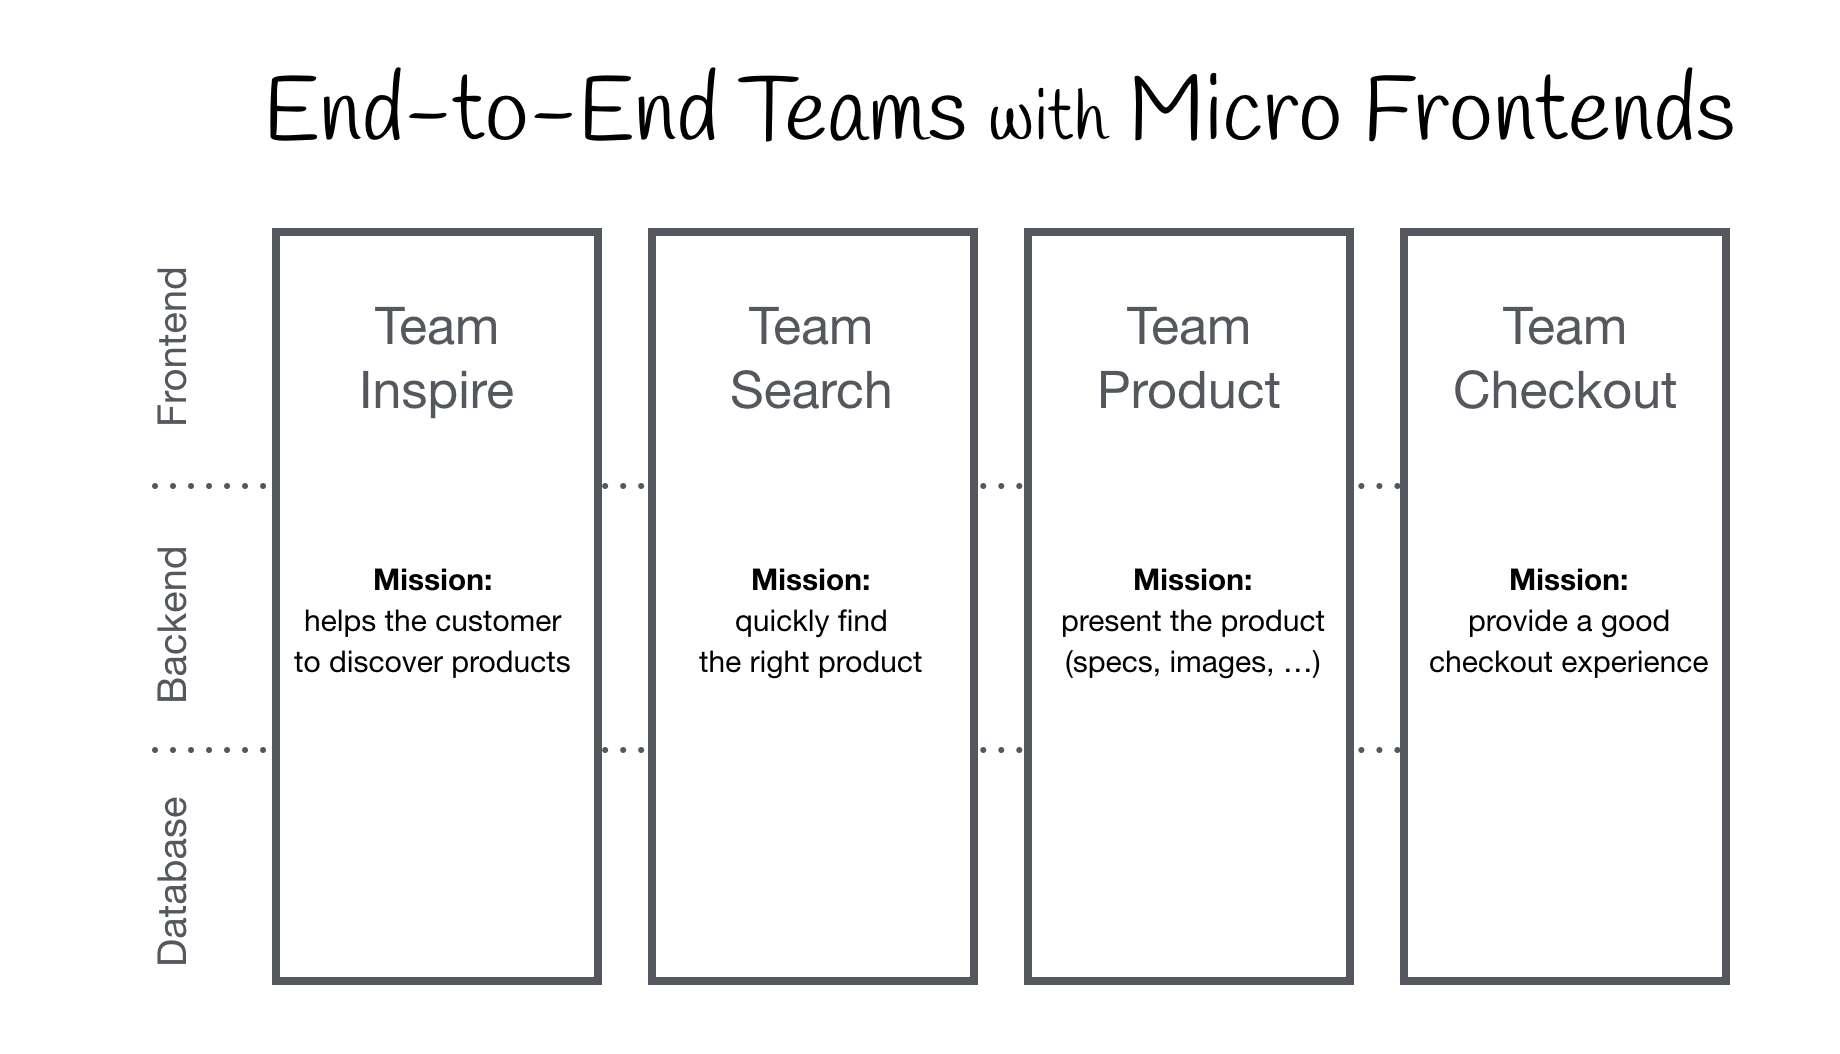 Micro Frontends - extending the microservice idea to frontend